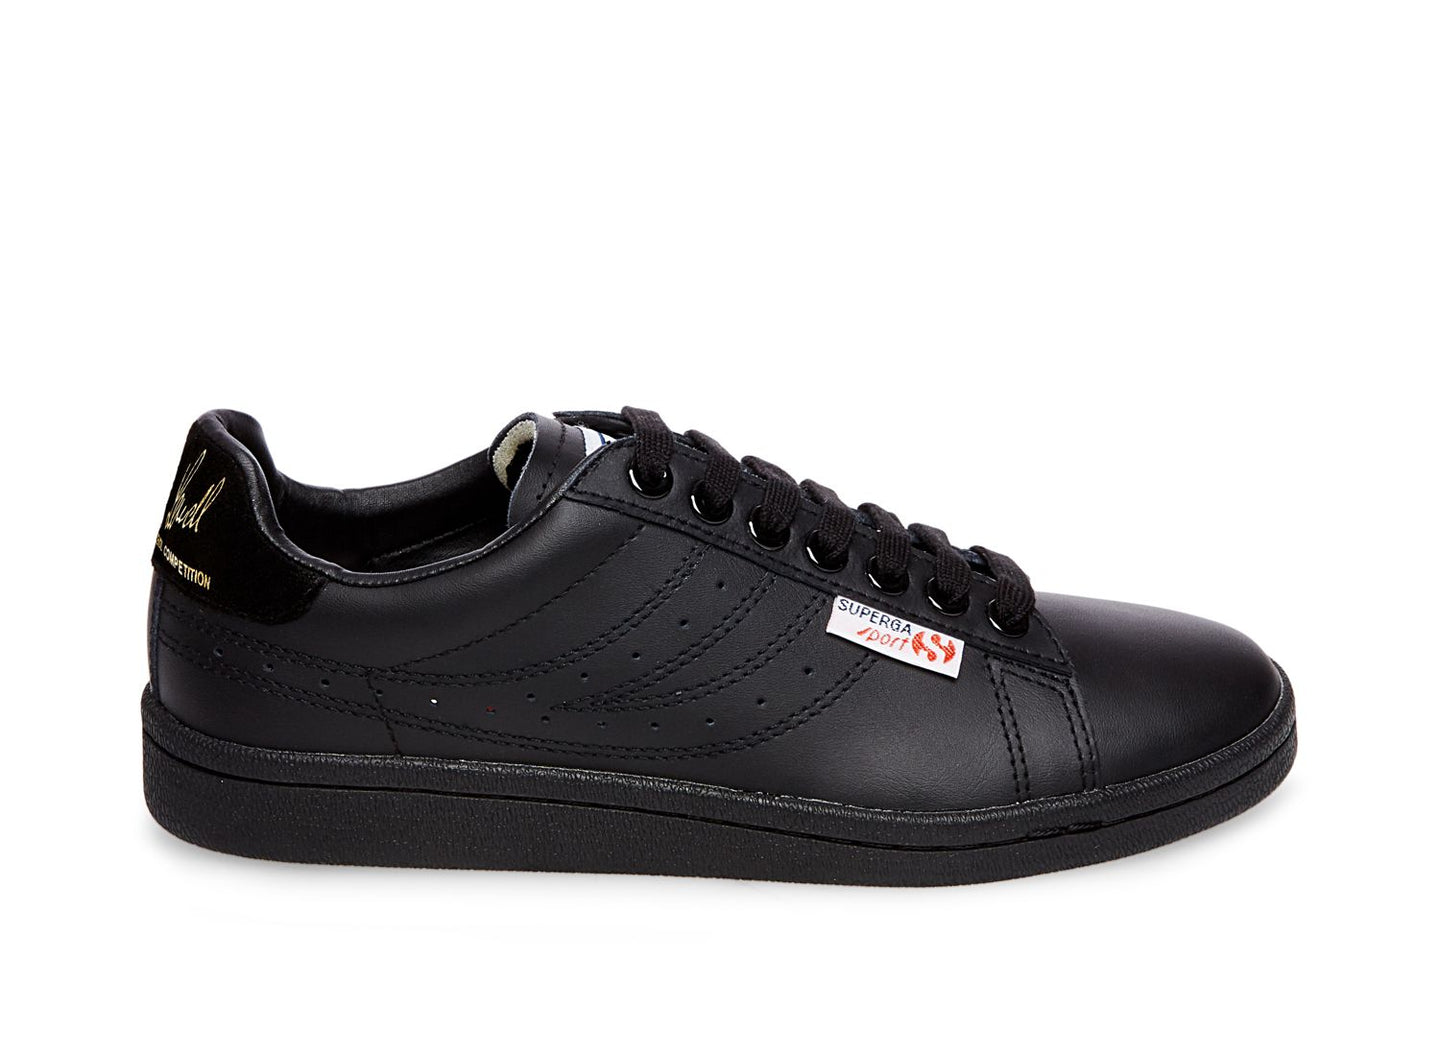 4832 EFGLU FULL BLACK -